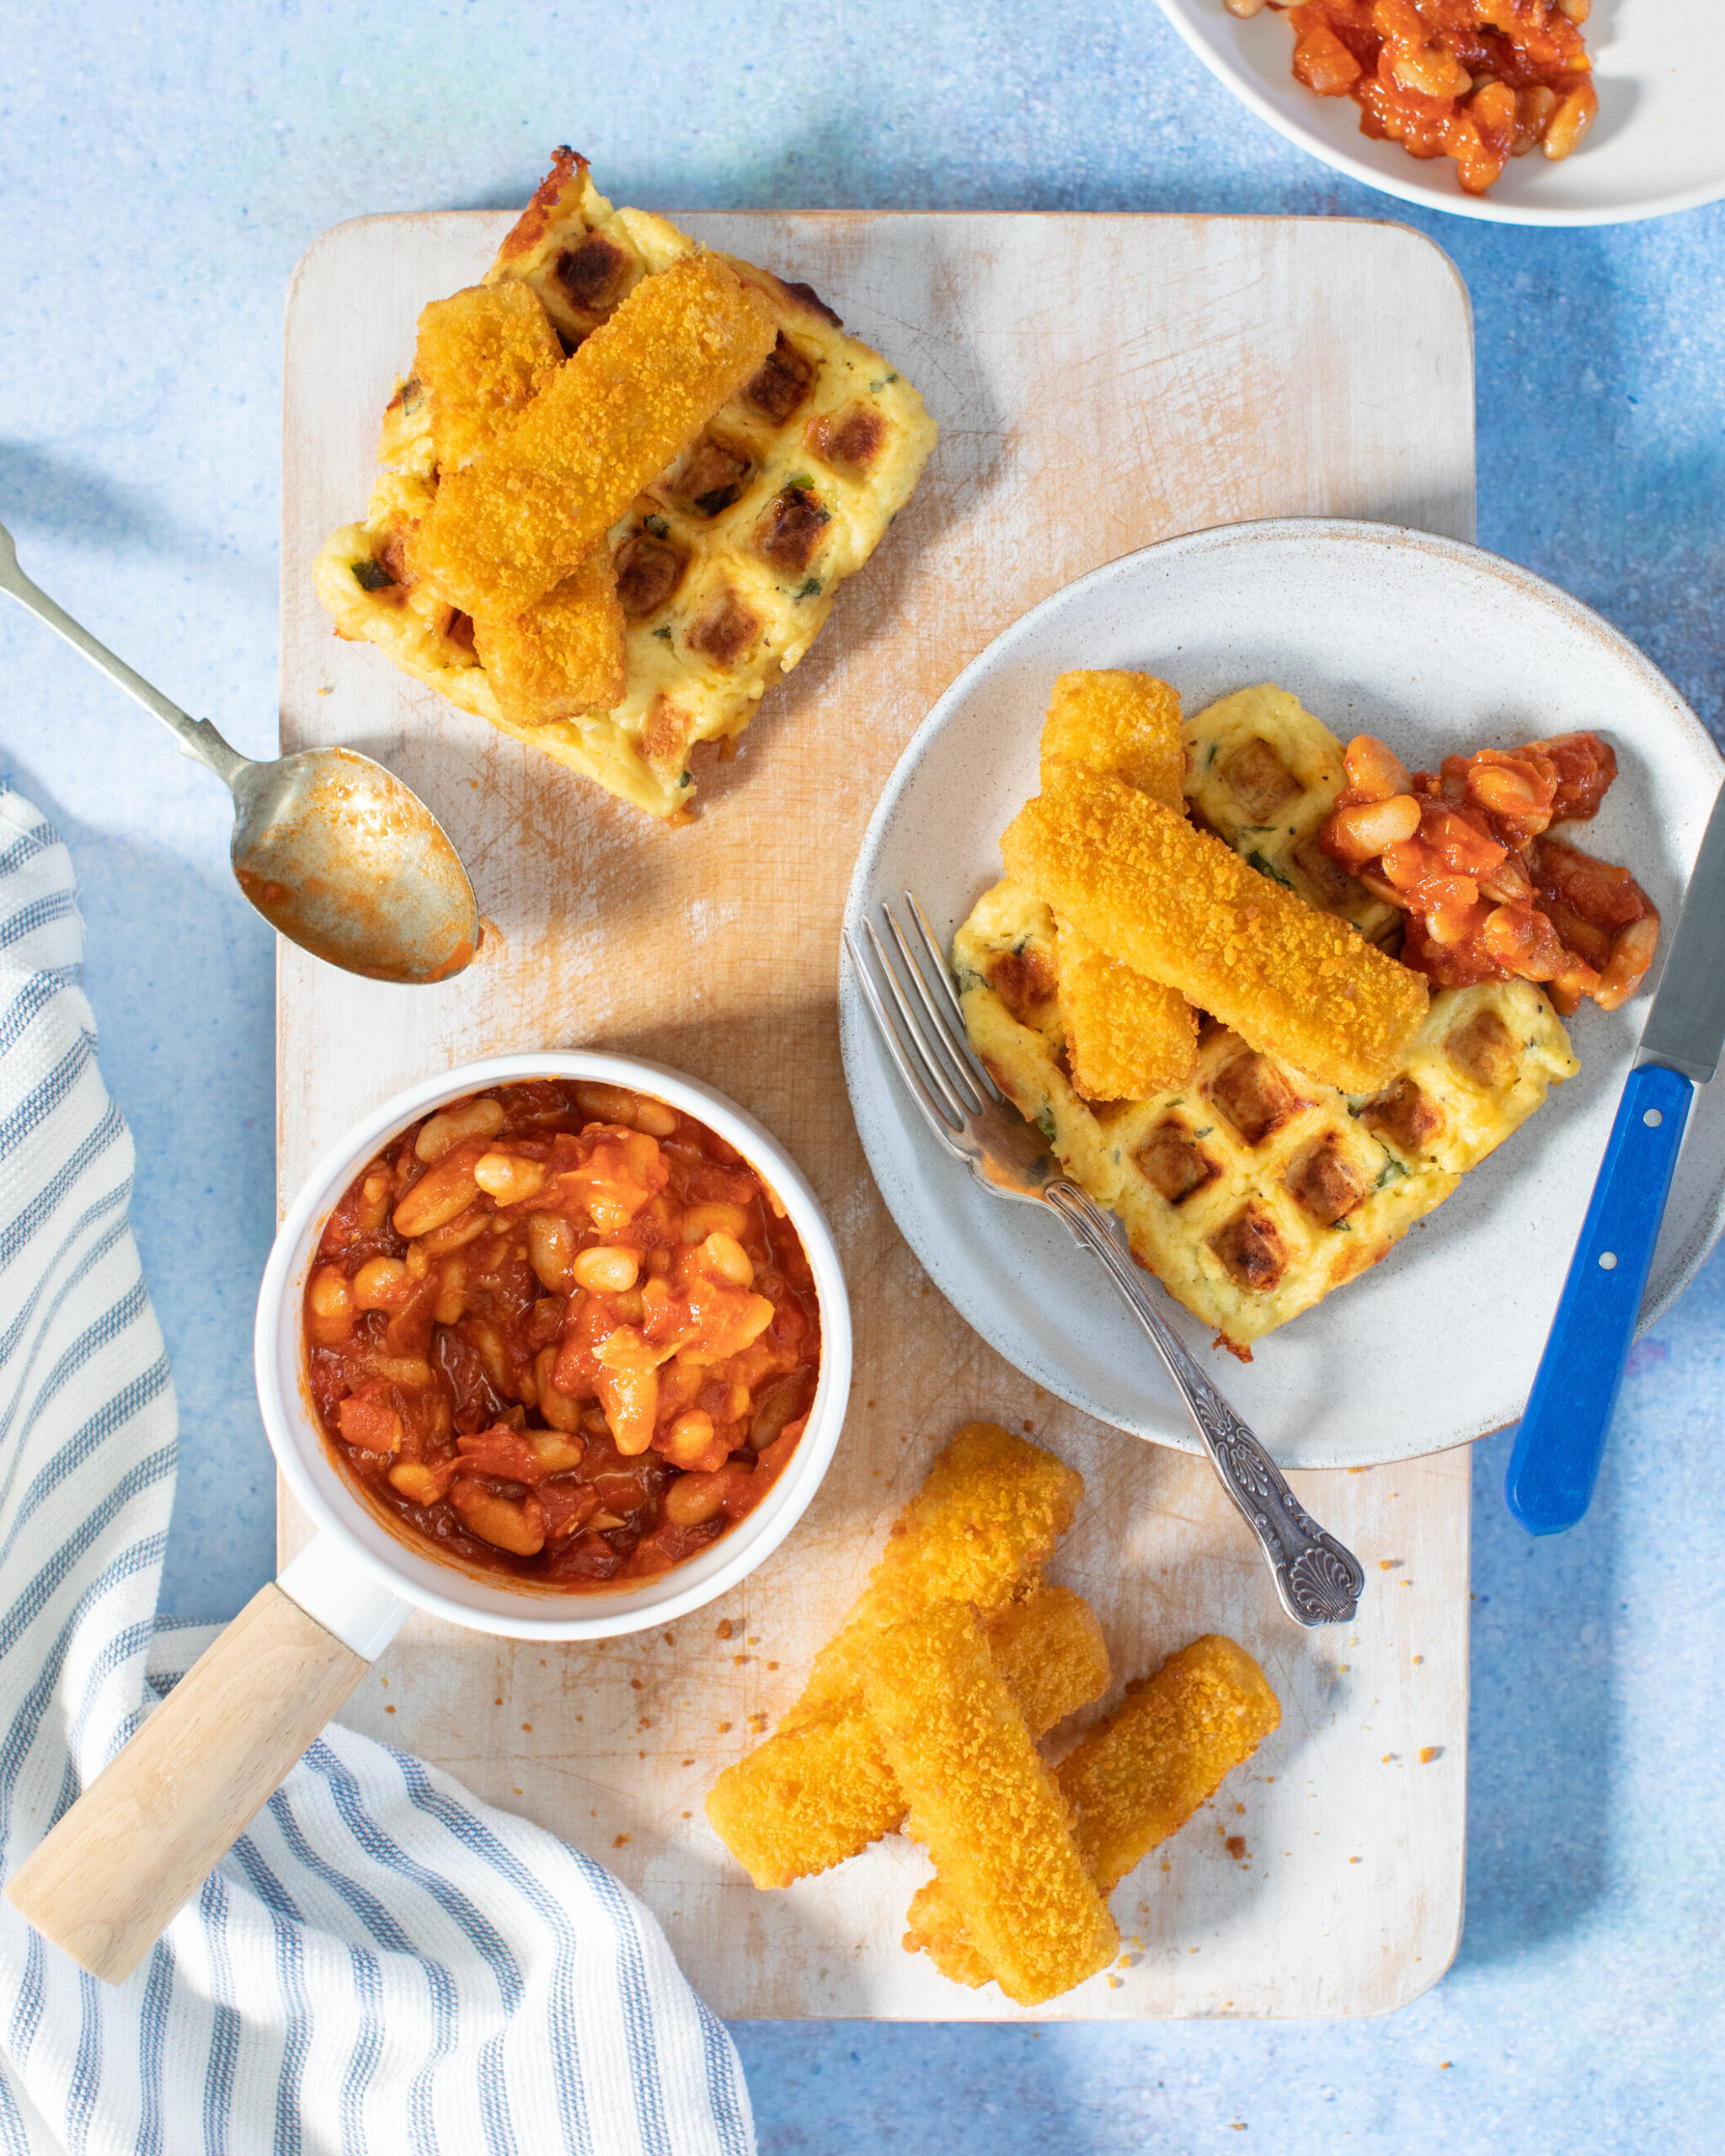 Donegal Catch Omega 3 Fish fingers, homemade potato waffles, homemade beans